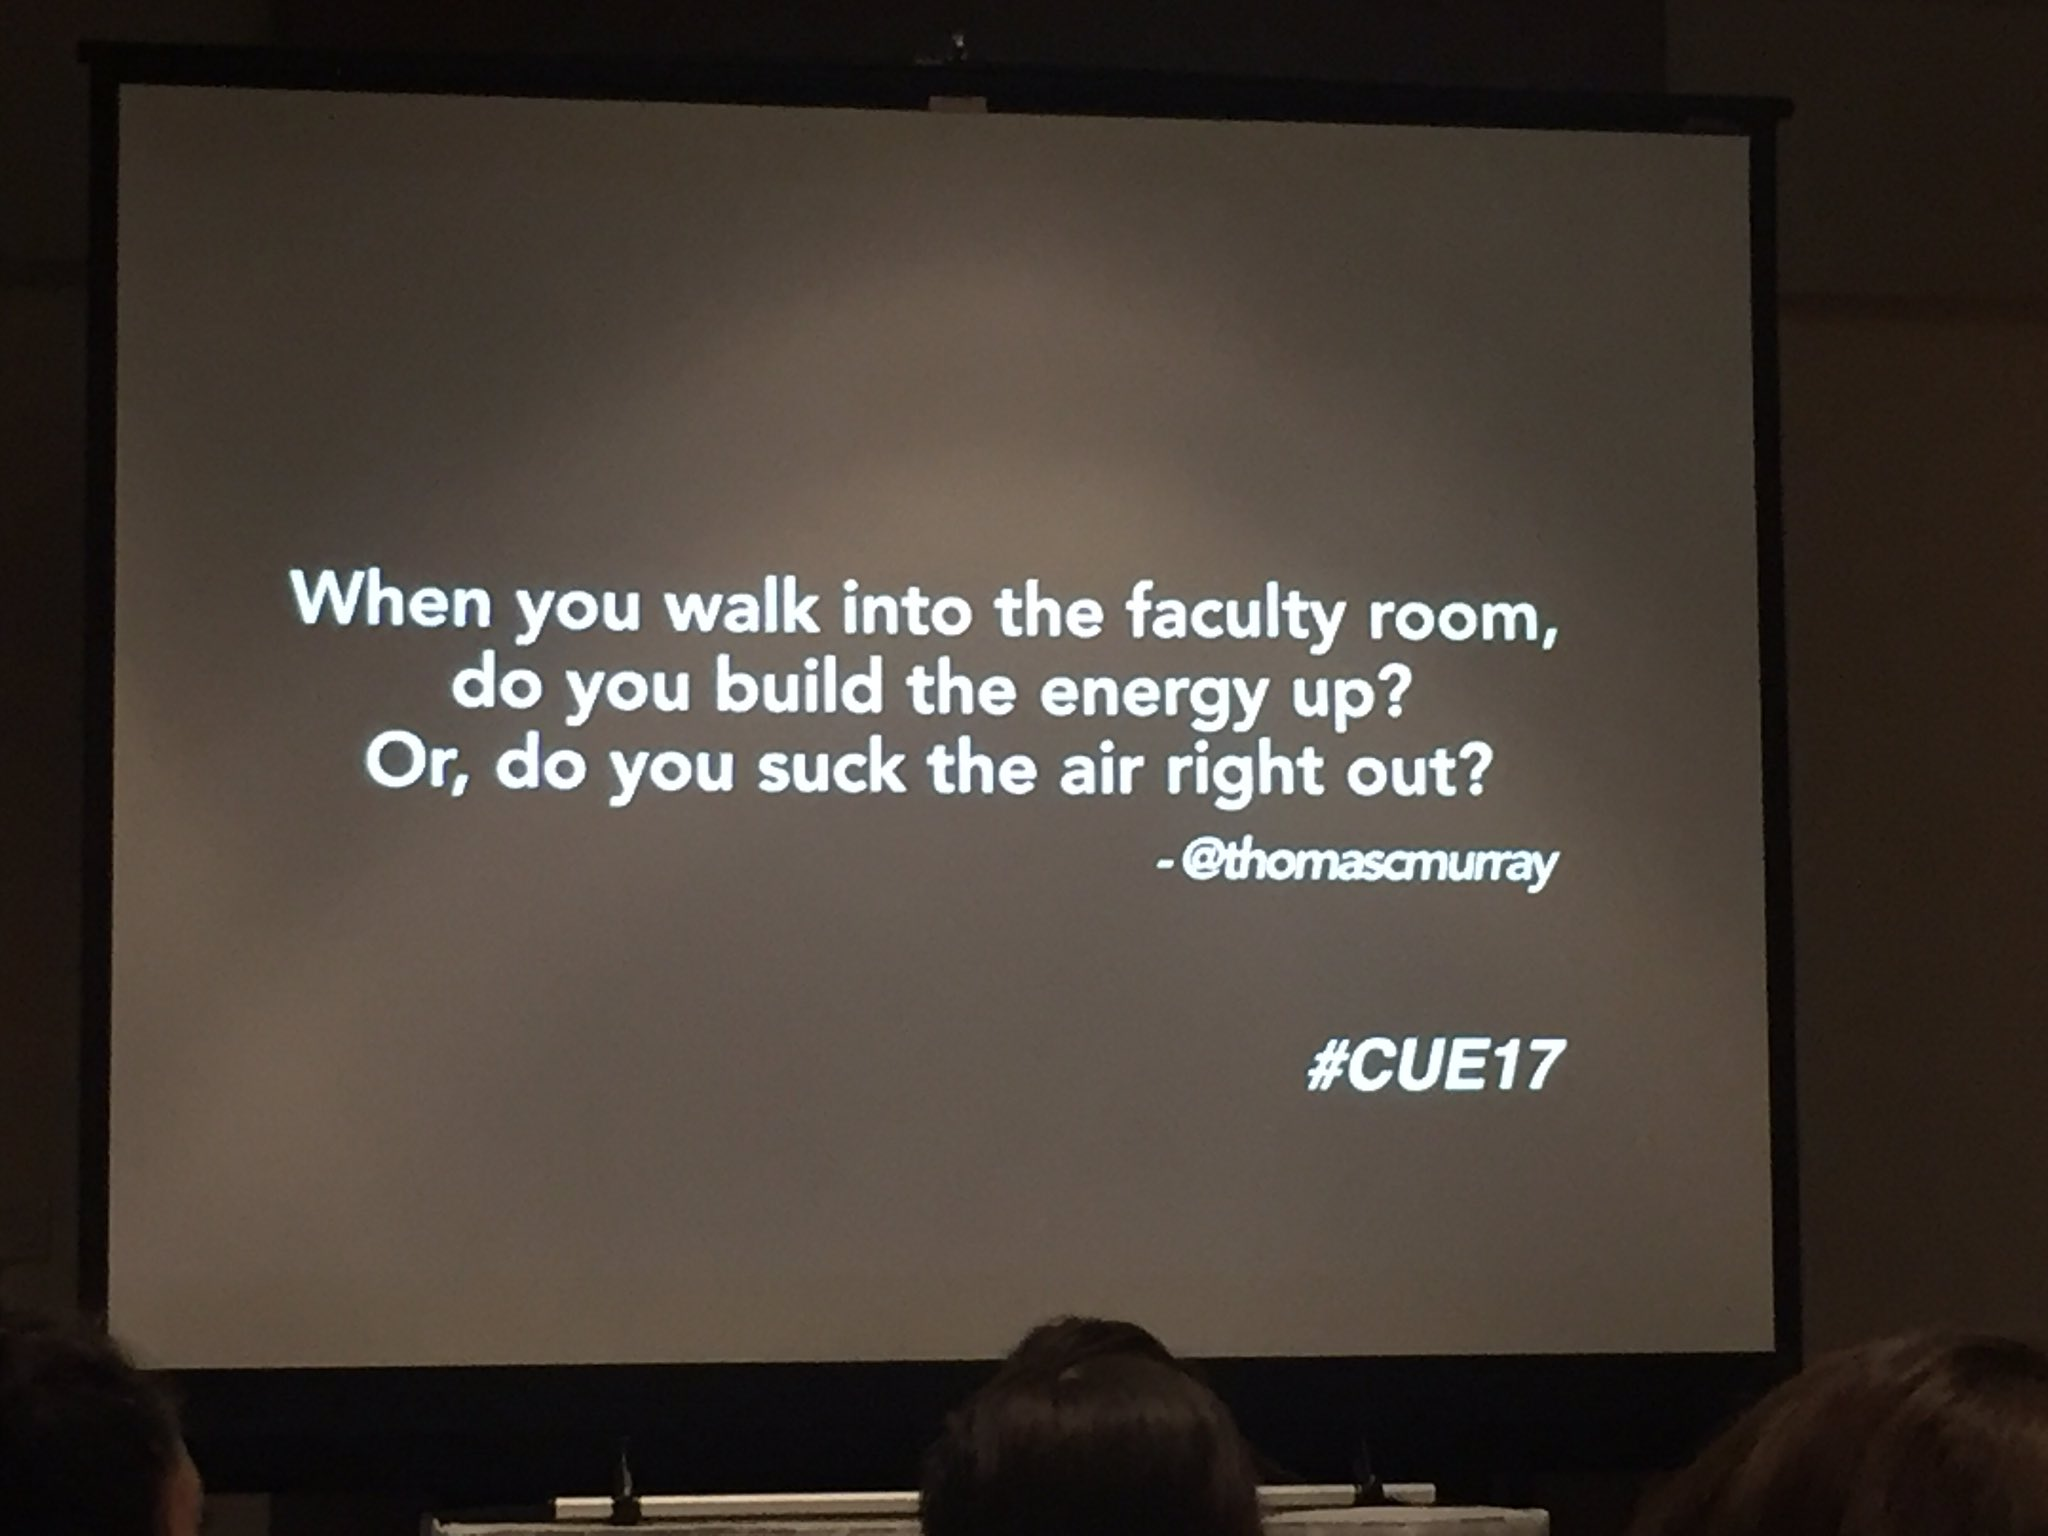 Ts, Ps, Admin... every person in the room sets the culture. Innovation cannot happen in a toxic culture. @thomascmurray #cue17 https://t.co/XA4X4MxrRV